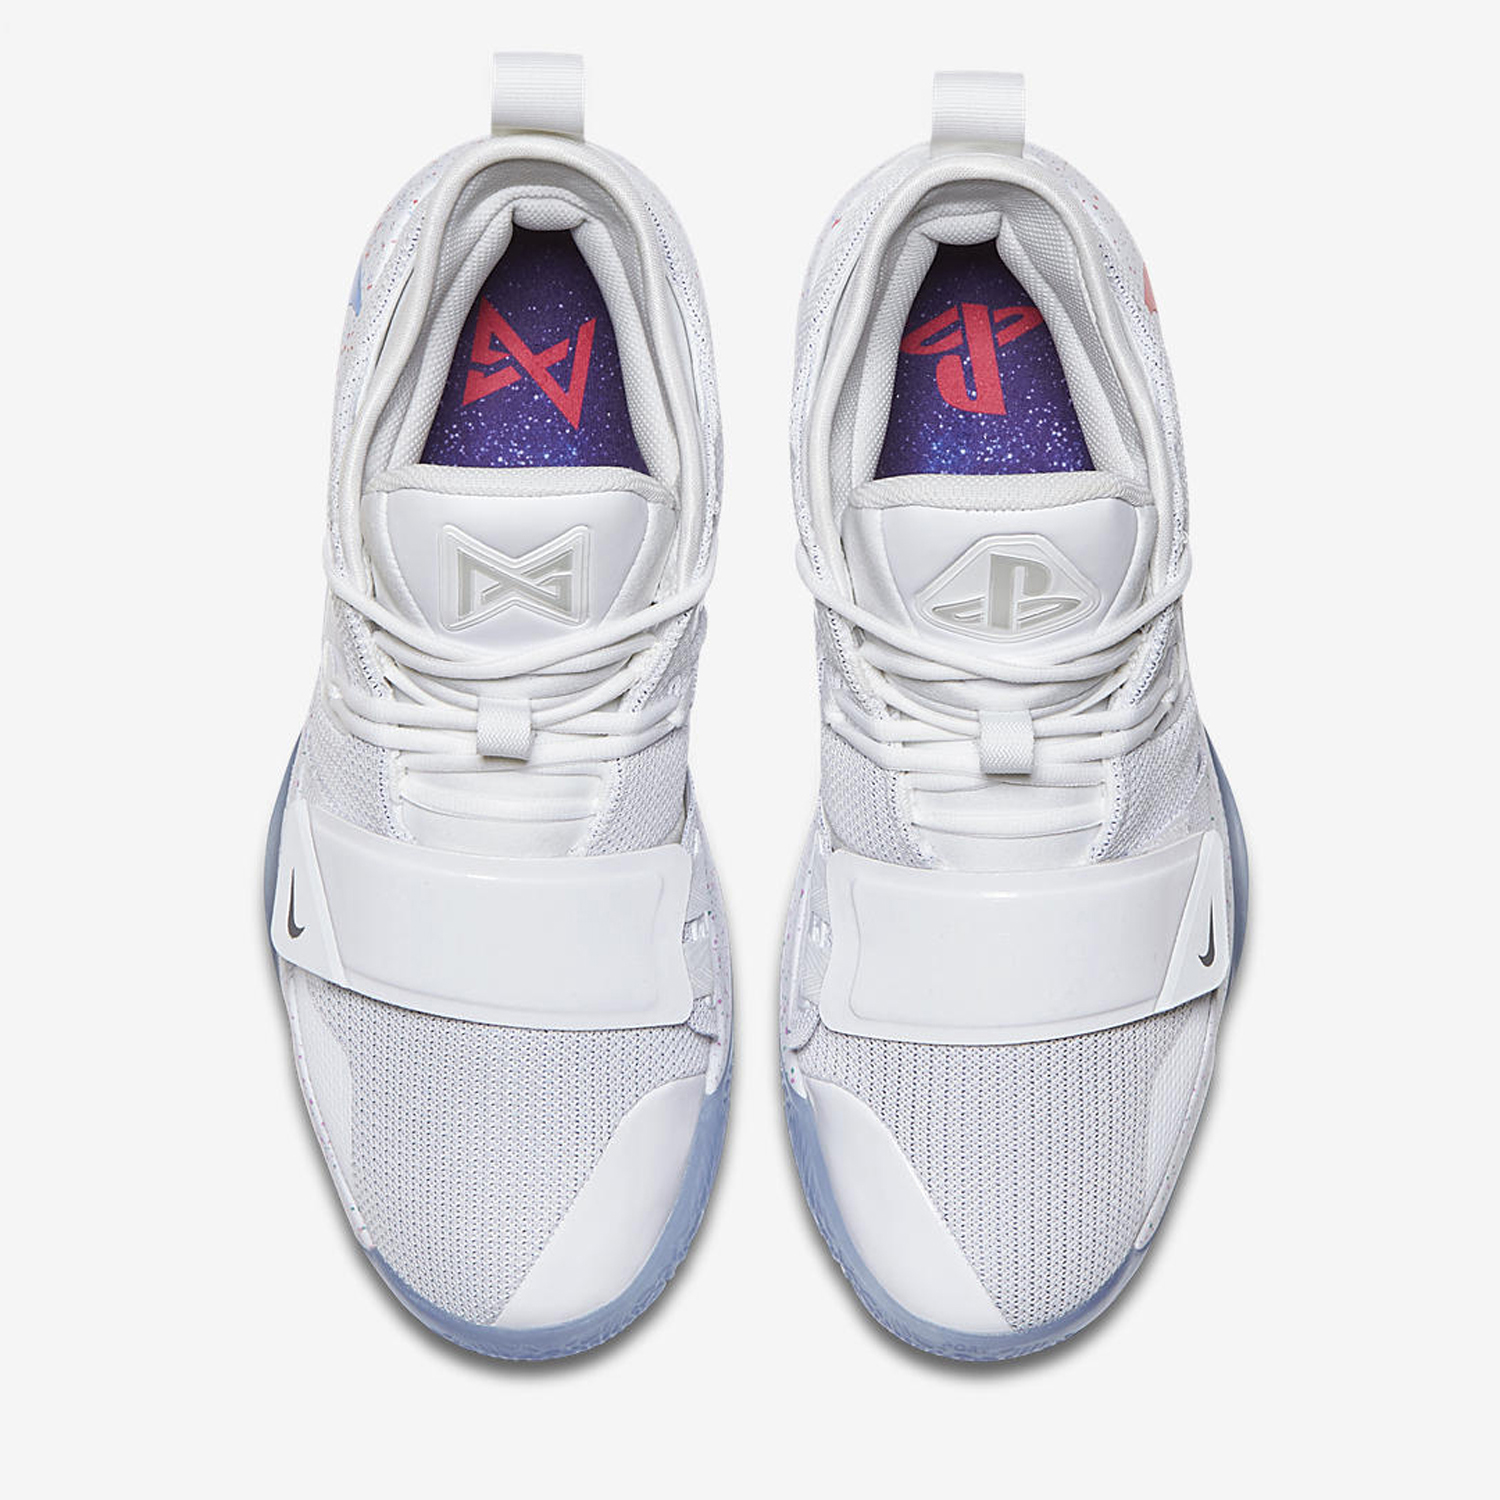 a630bd6e0b44 Nike-PG-2.5-Playstation-White-3 - WearTesters